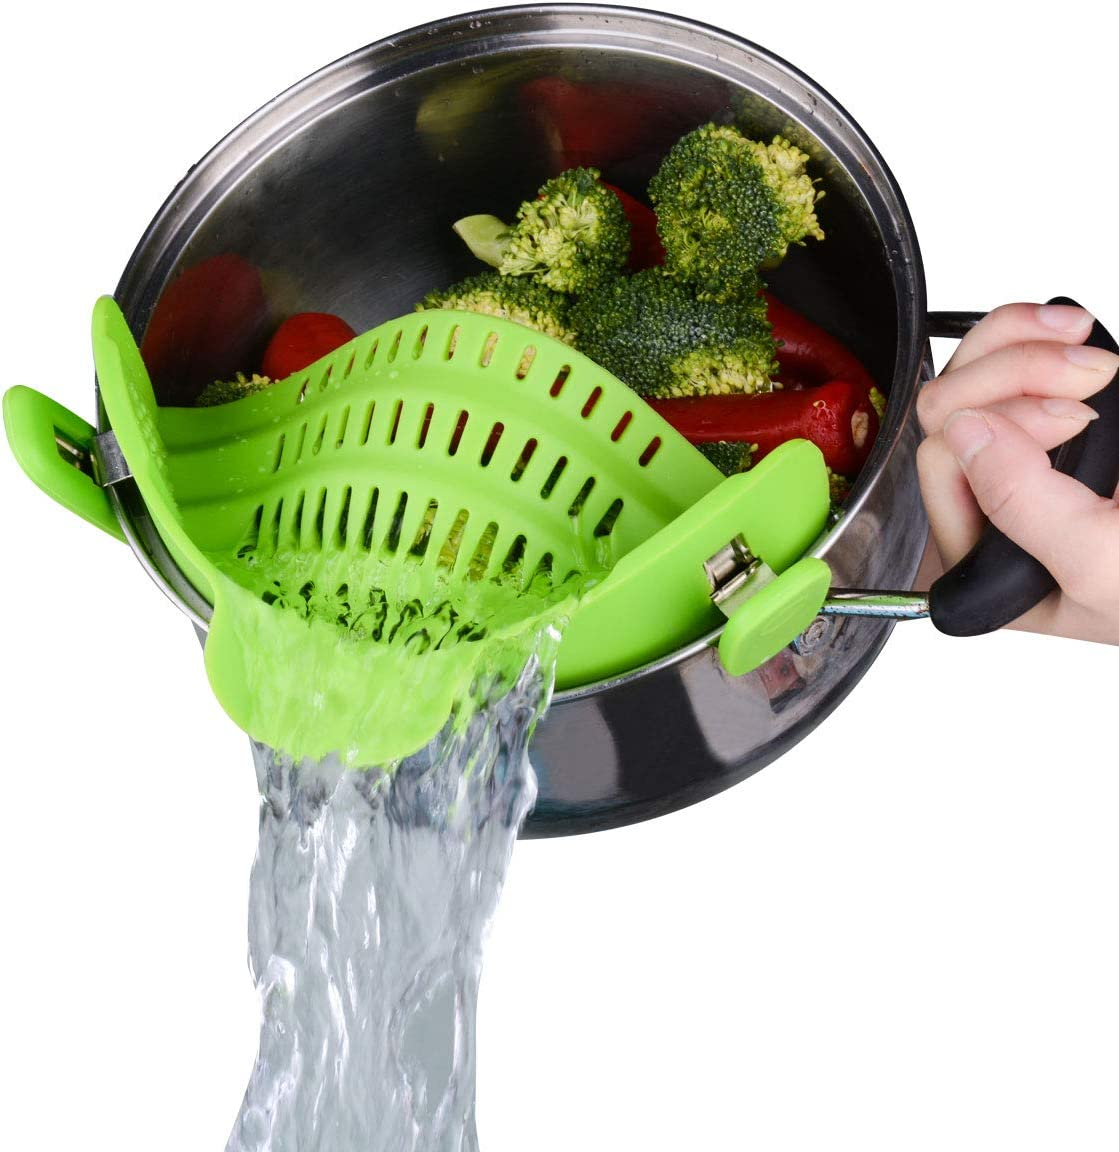 Kitchen Food Strainer, Ecurfu Silicone Snaps Strain Clip On Colander, Fits all Pots and Bowls - Green